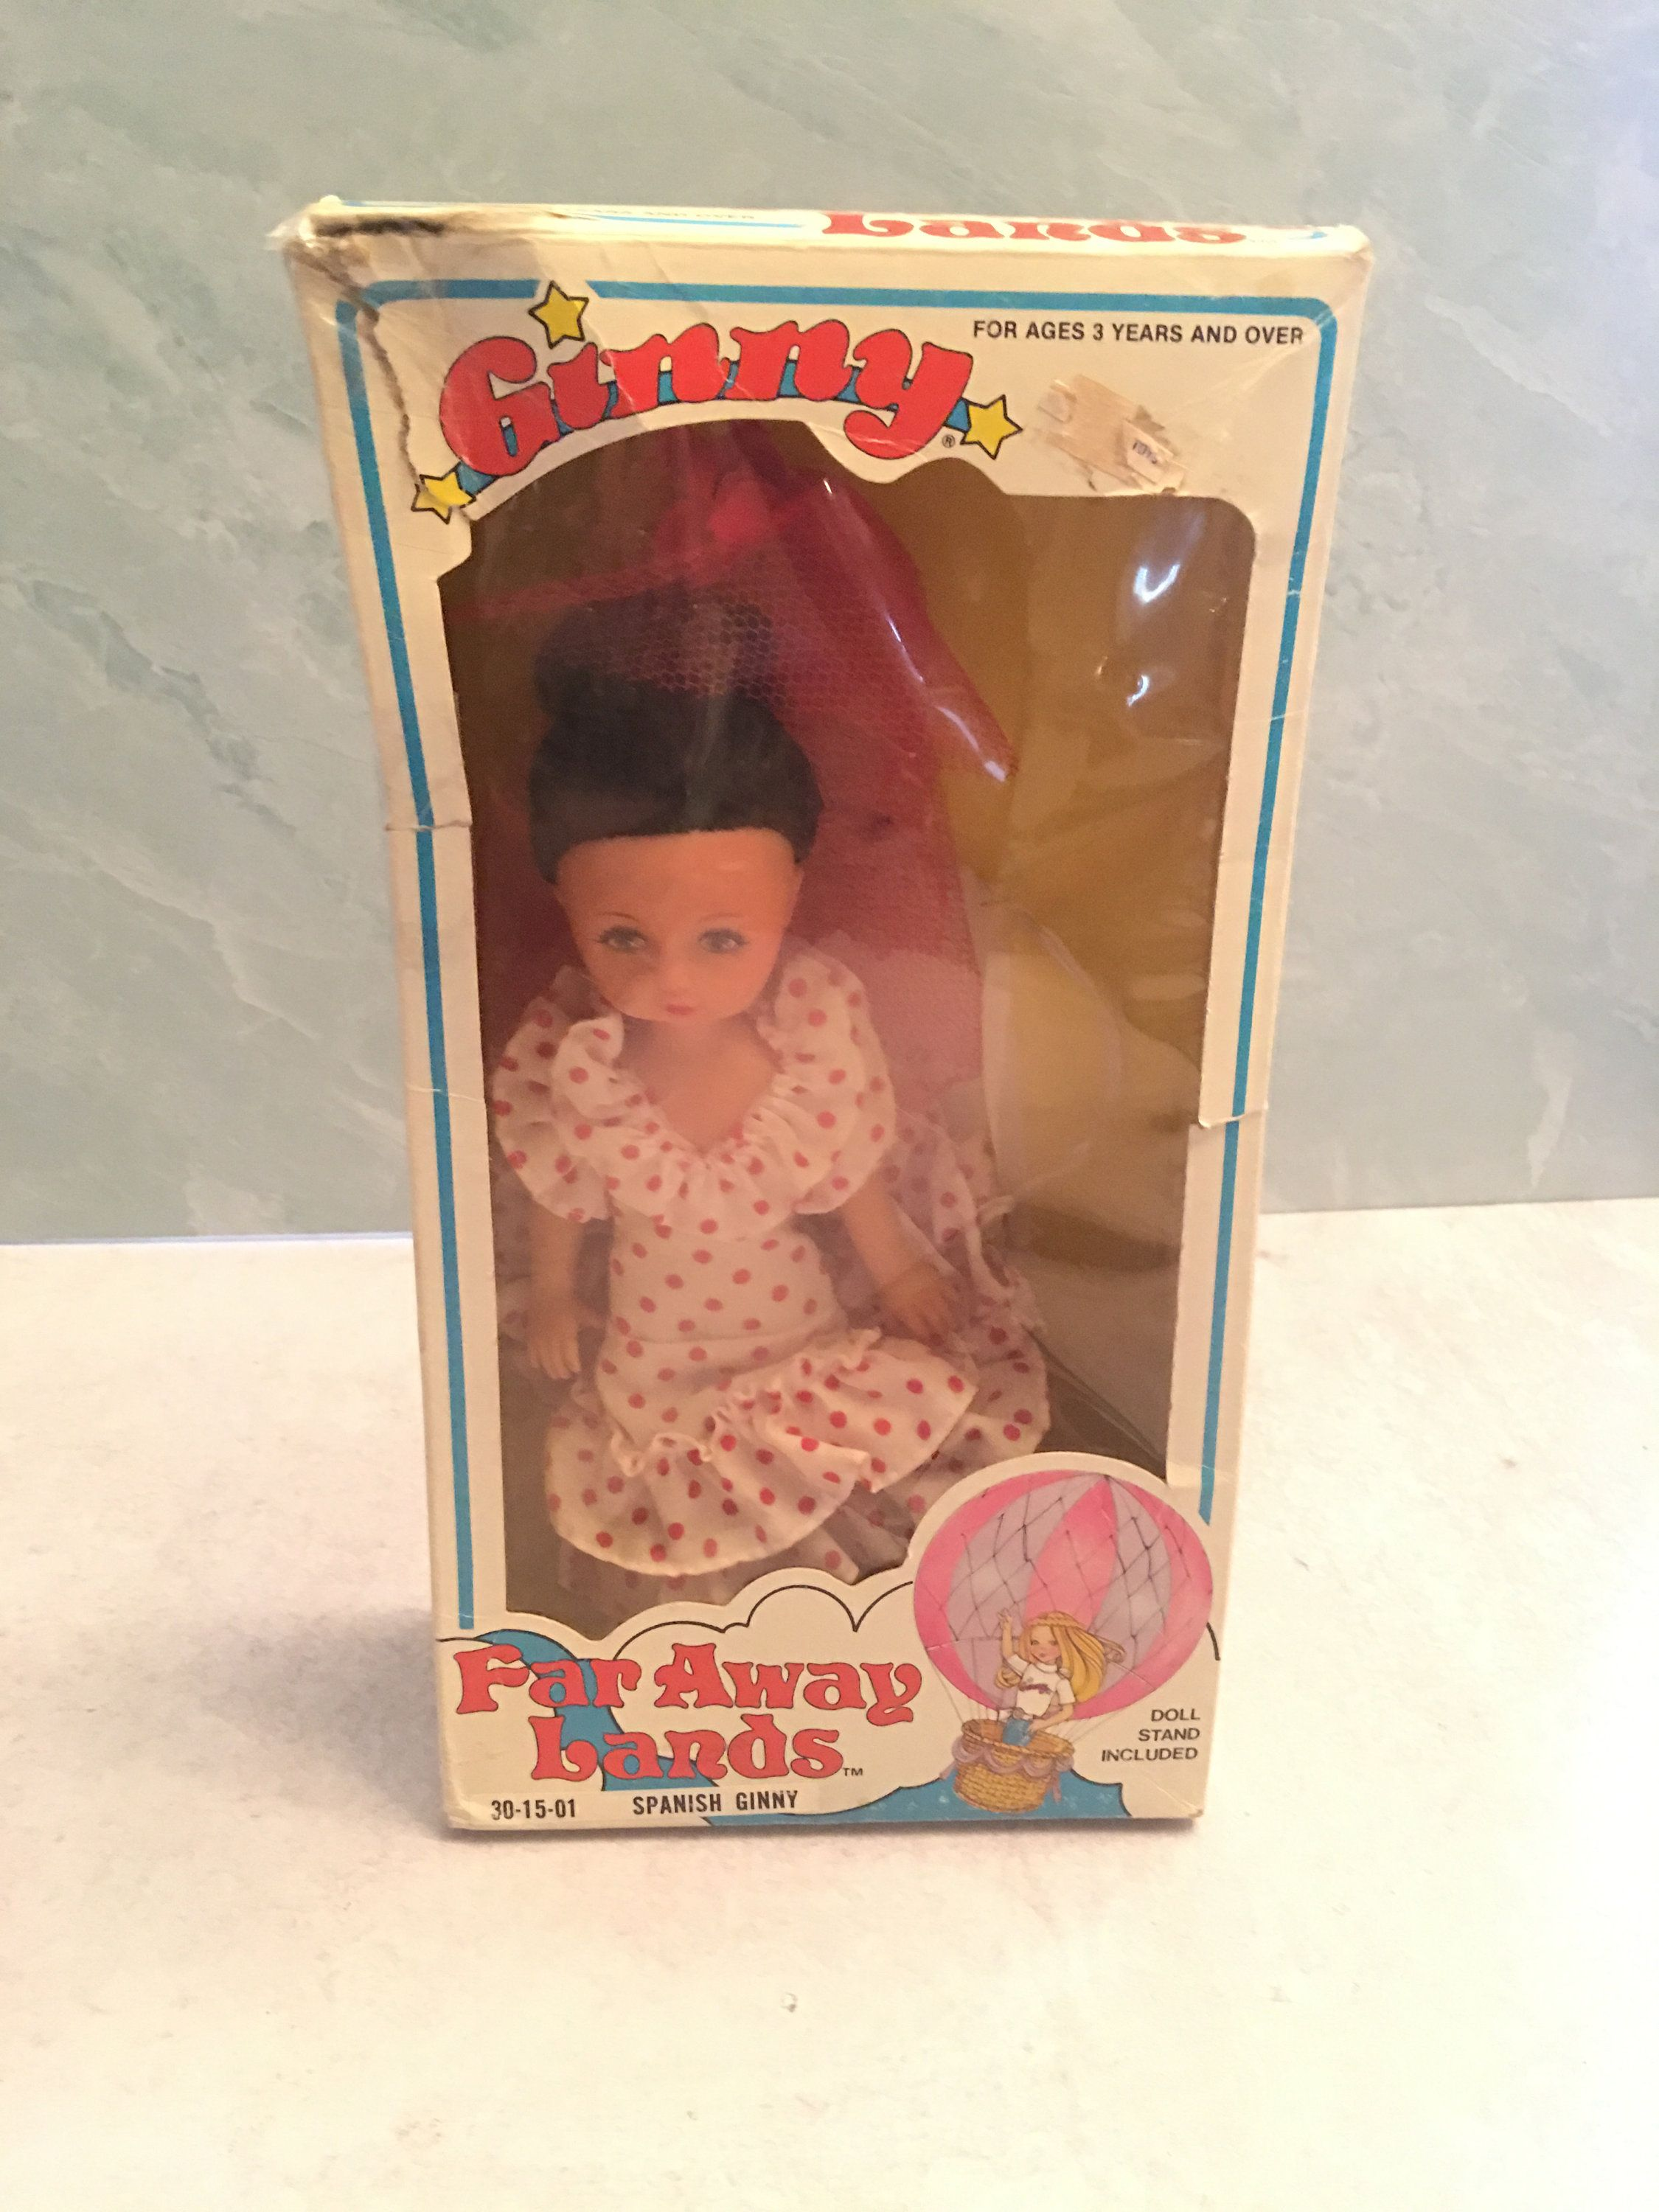 Vintage 1982 Ginny Vogue Spanish Doll Far away lands with box and doll stand 8 Poseable polka dot dress #spanishdolls